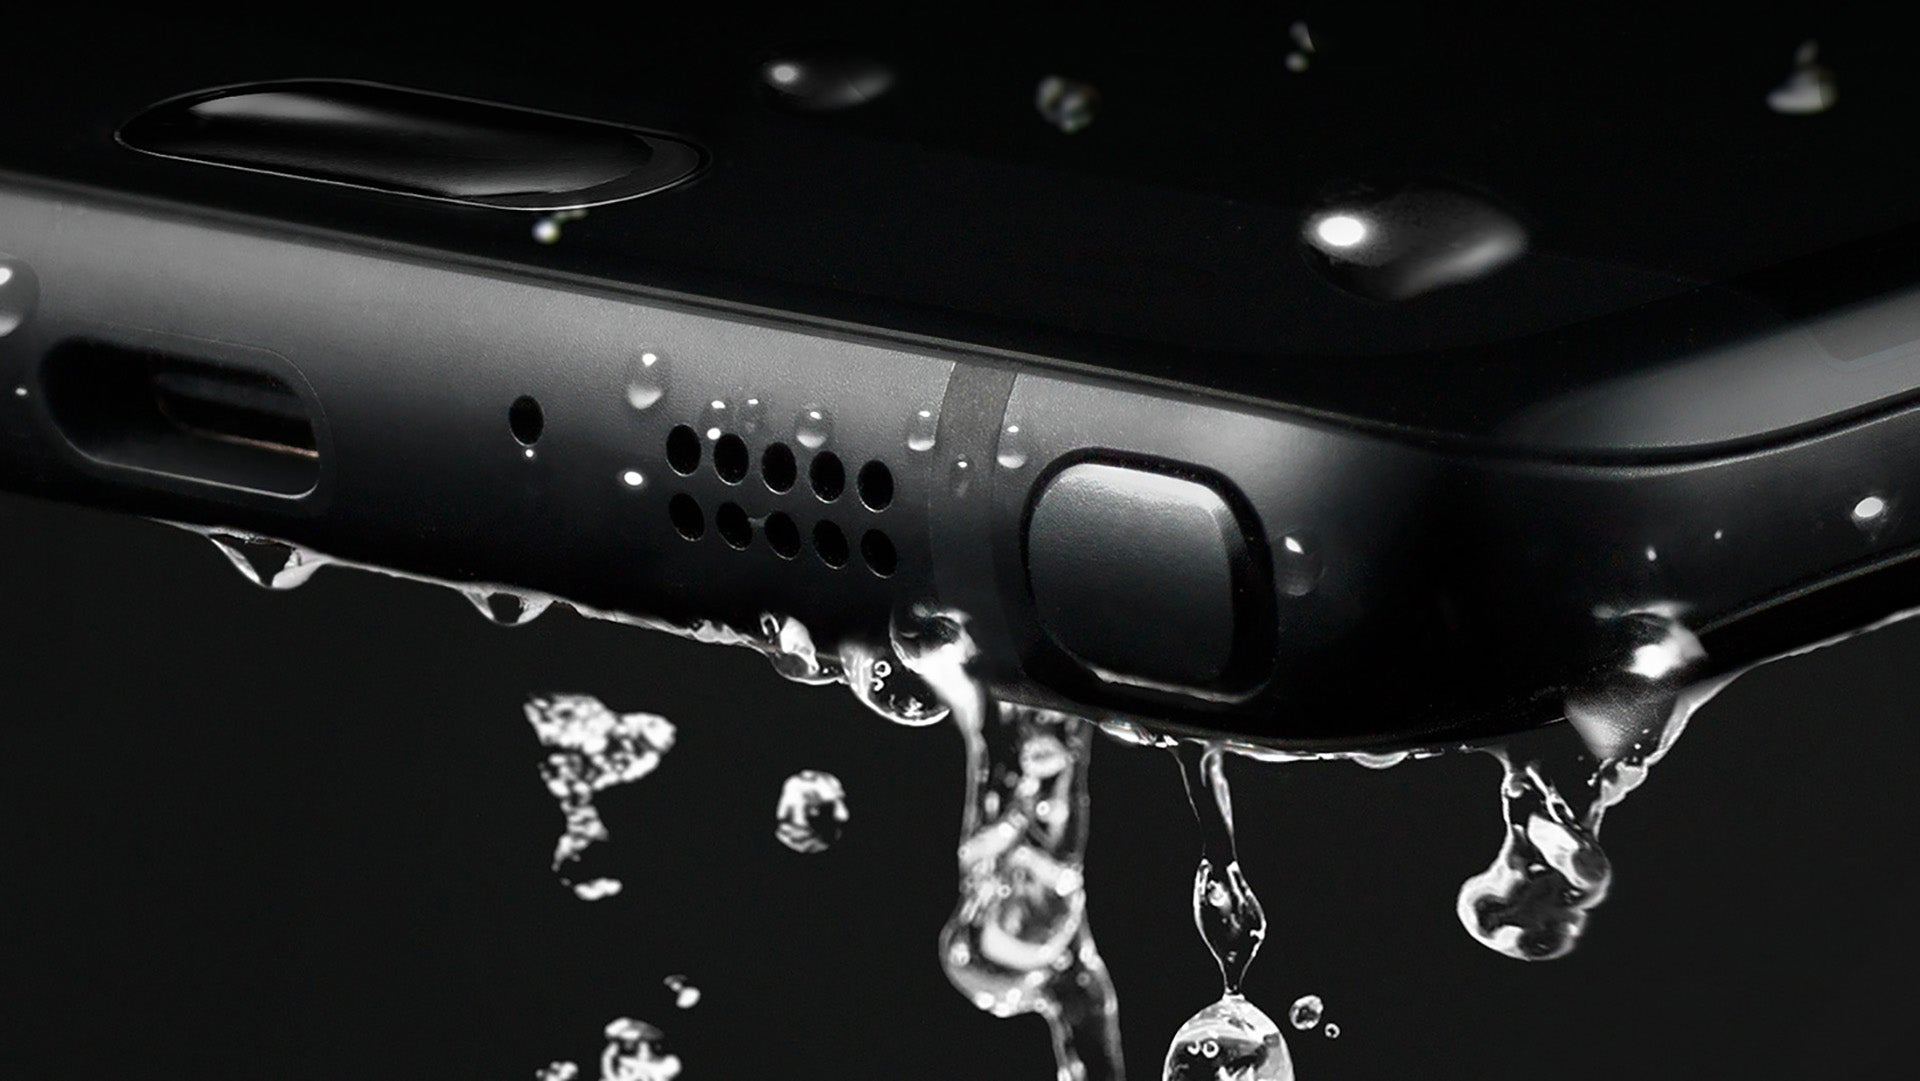 Image result for samsung galaxy note 8 waterproof